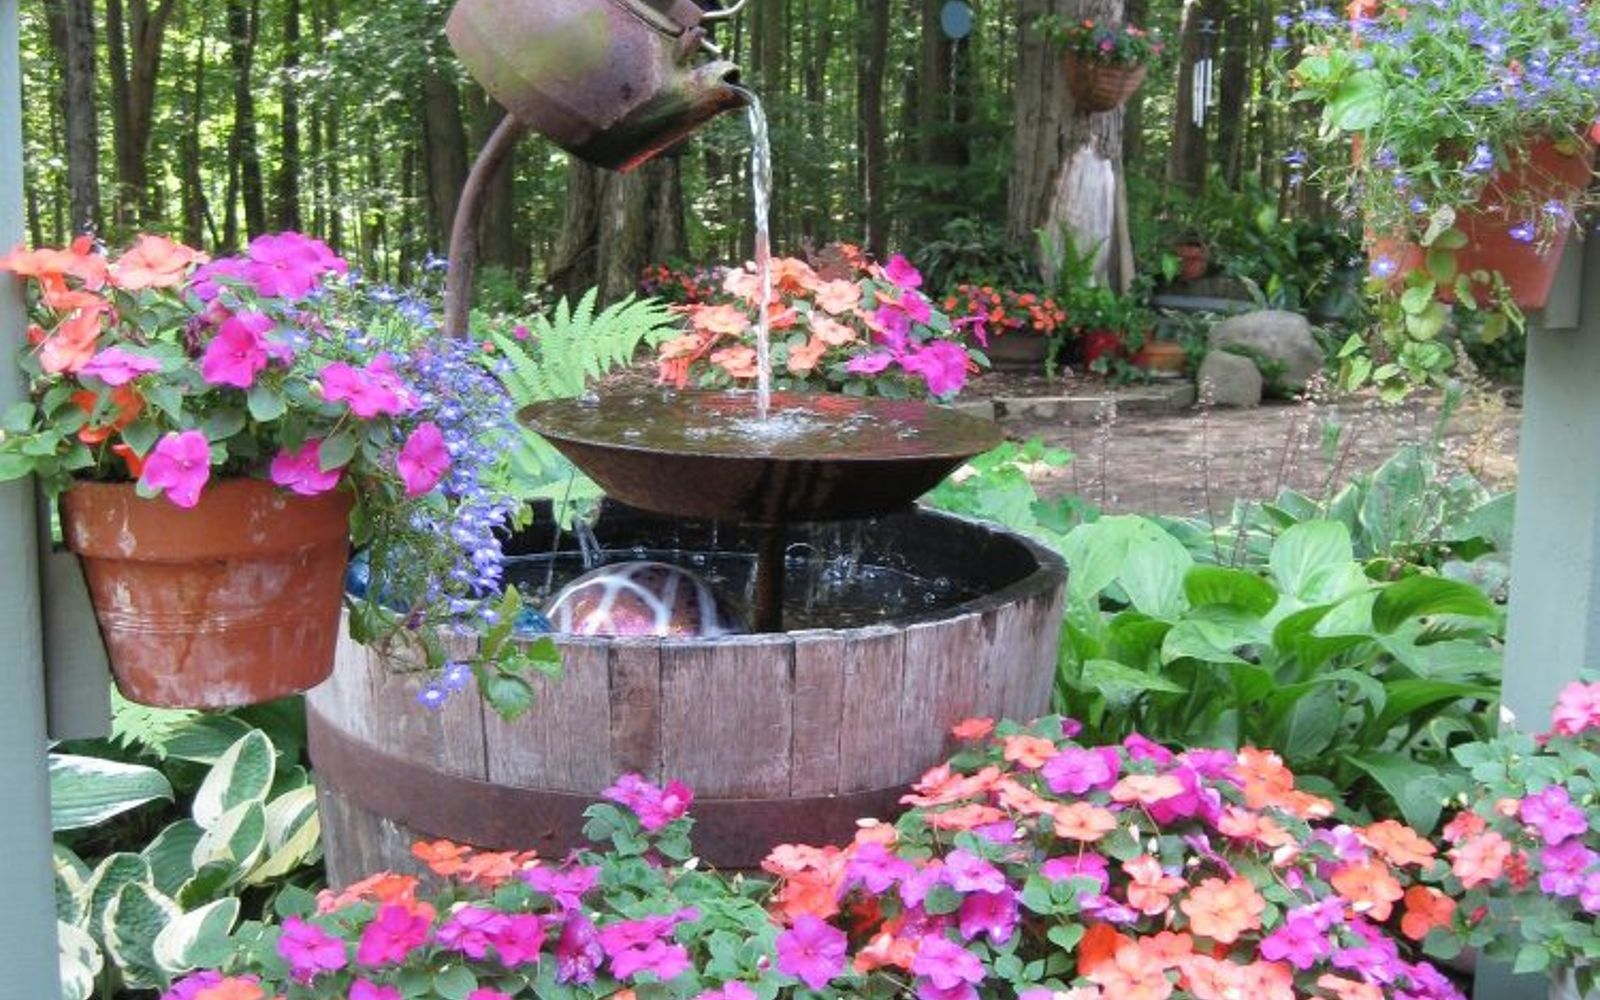 s 10 mini water features to add zen to your garden, outdoor living, ponds water features, Upcycle a teapot into a rustic fountain